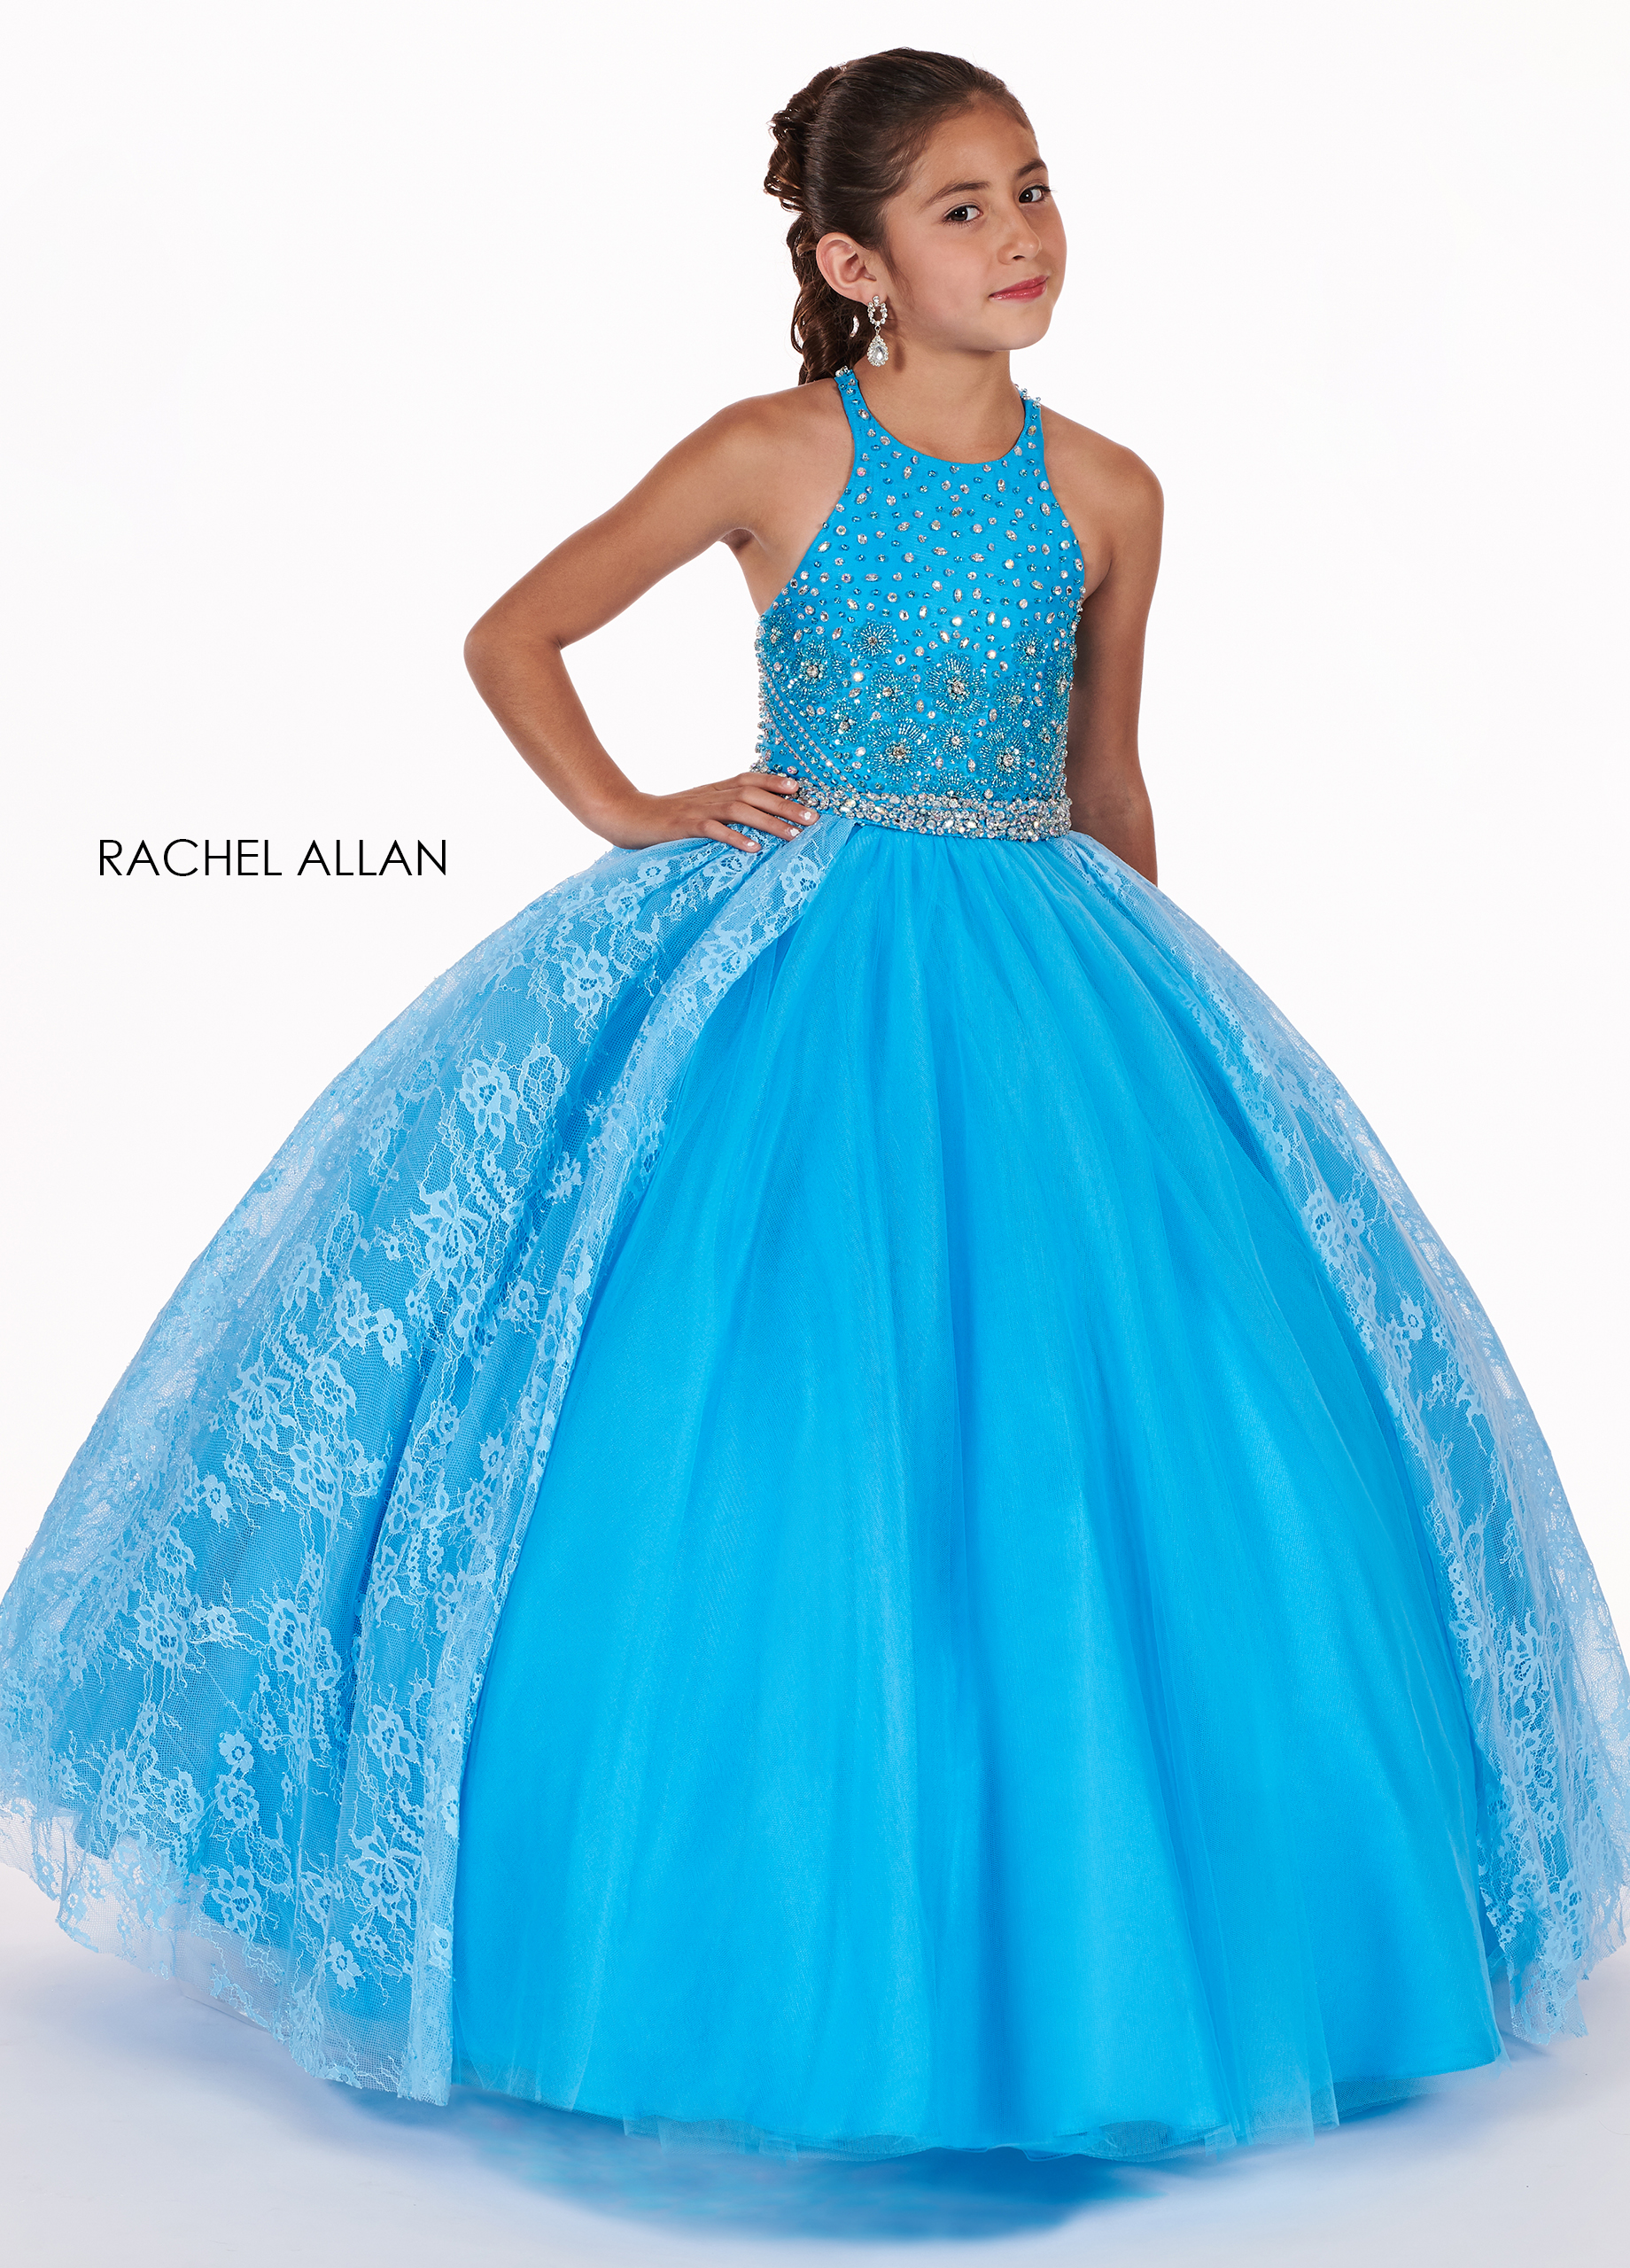 Halter Ball Gowns Little Girl Pageant Dresses in Turquoise Color